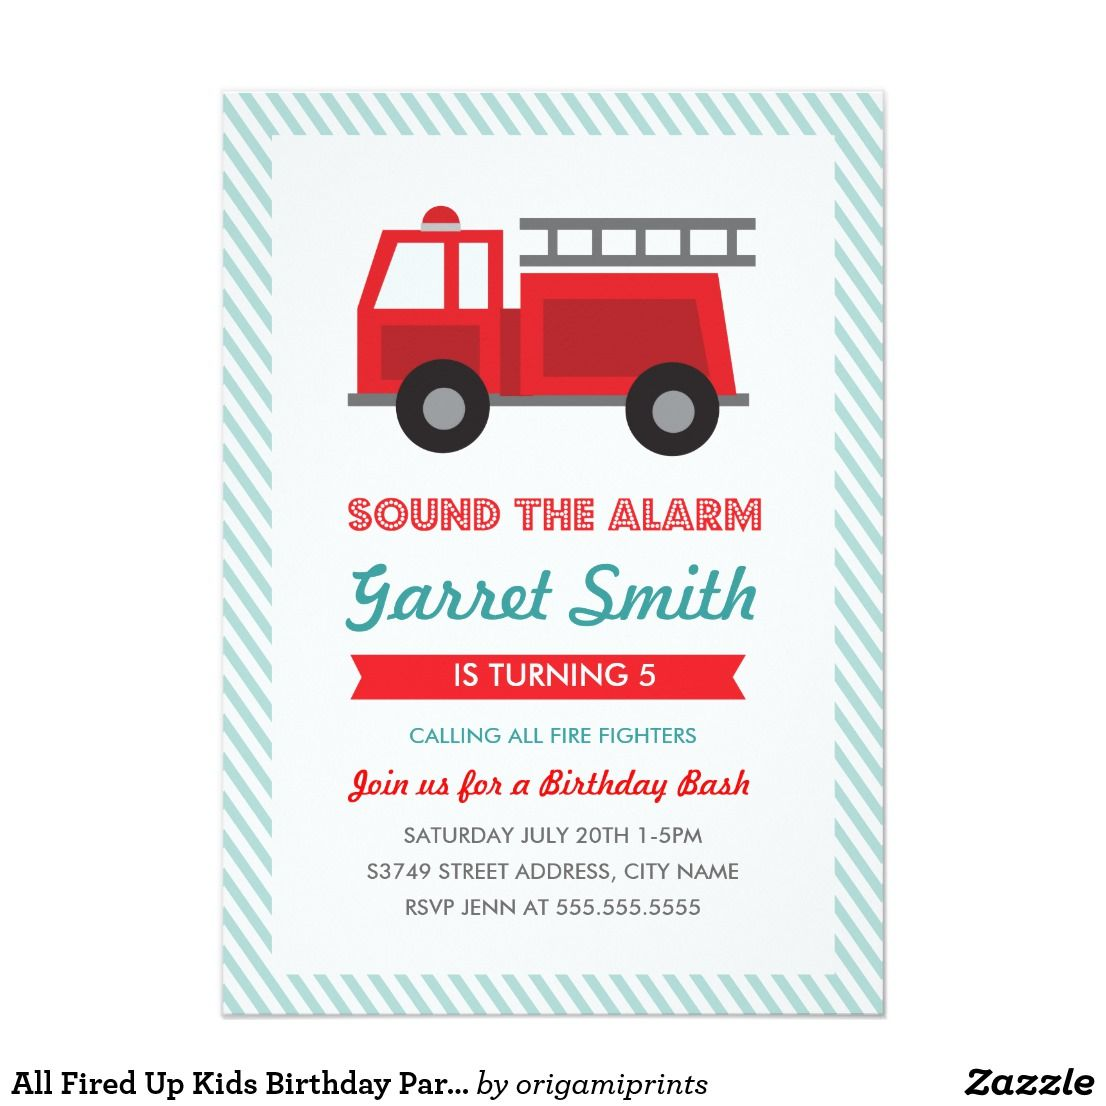 All Fired Up Kids Birthday Party Invitation | Kids birthday party ...